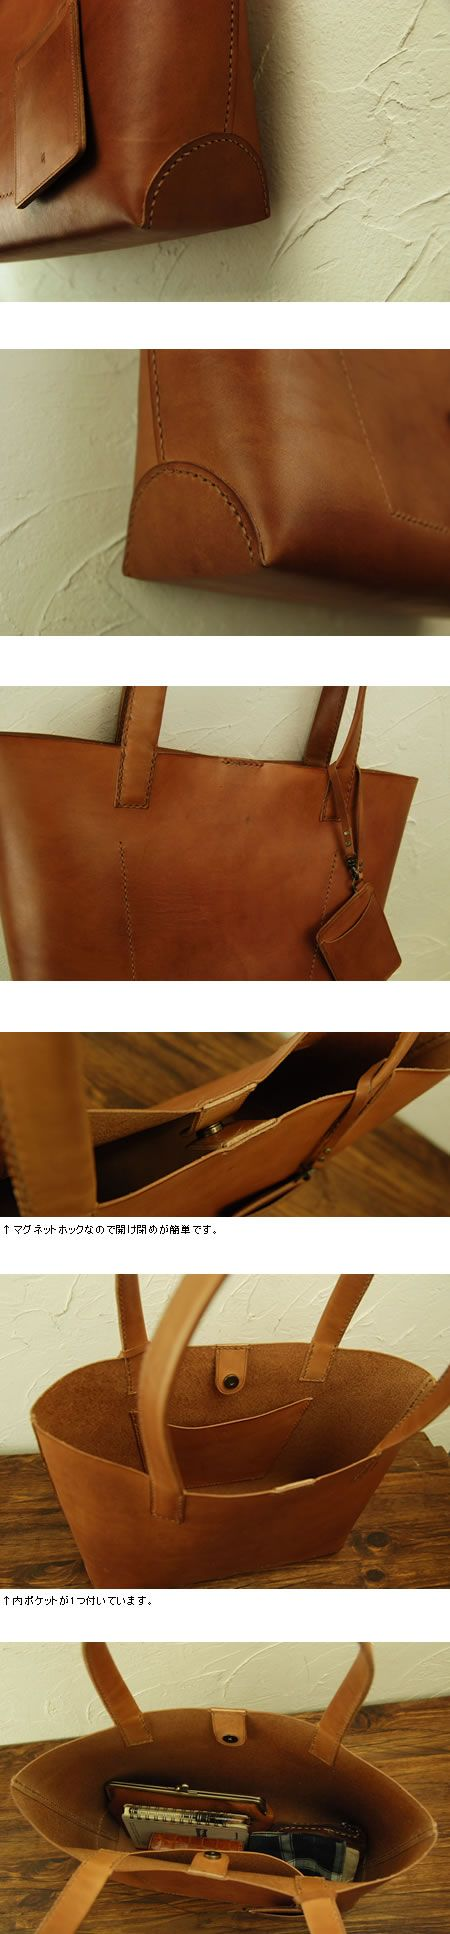 Cute leather bag - I love the round corner detail.